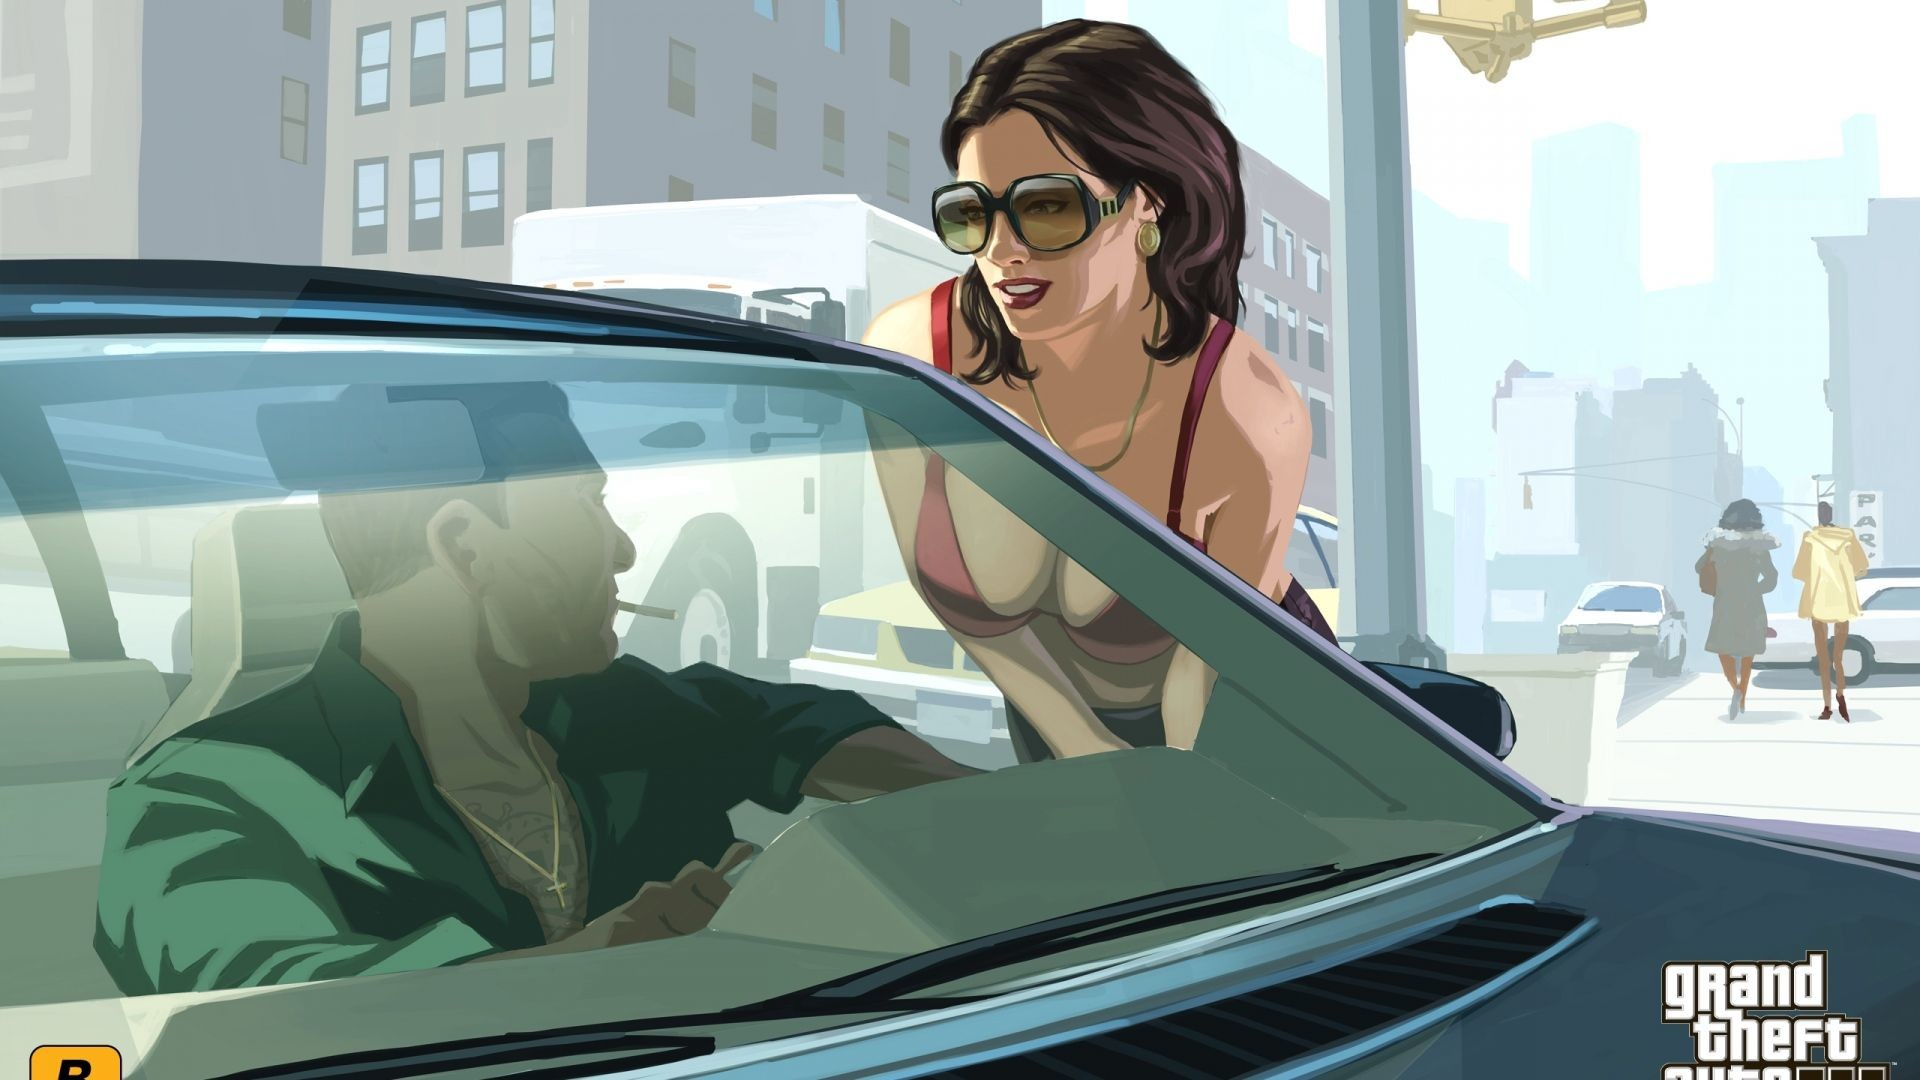 Res: 1920x1080, GTA Niko Bellic and his girl Wallpaper GTA IV Games Wallpapers